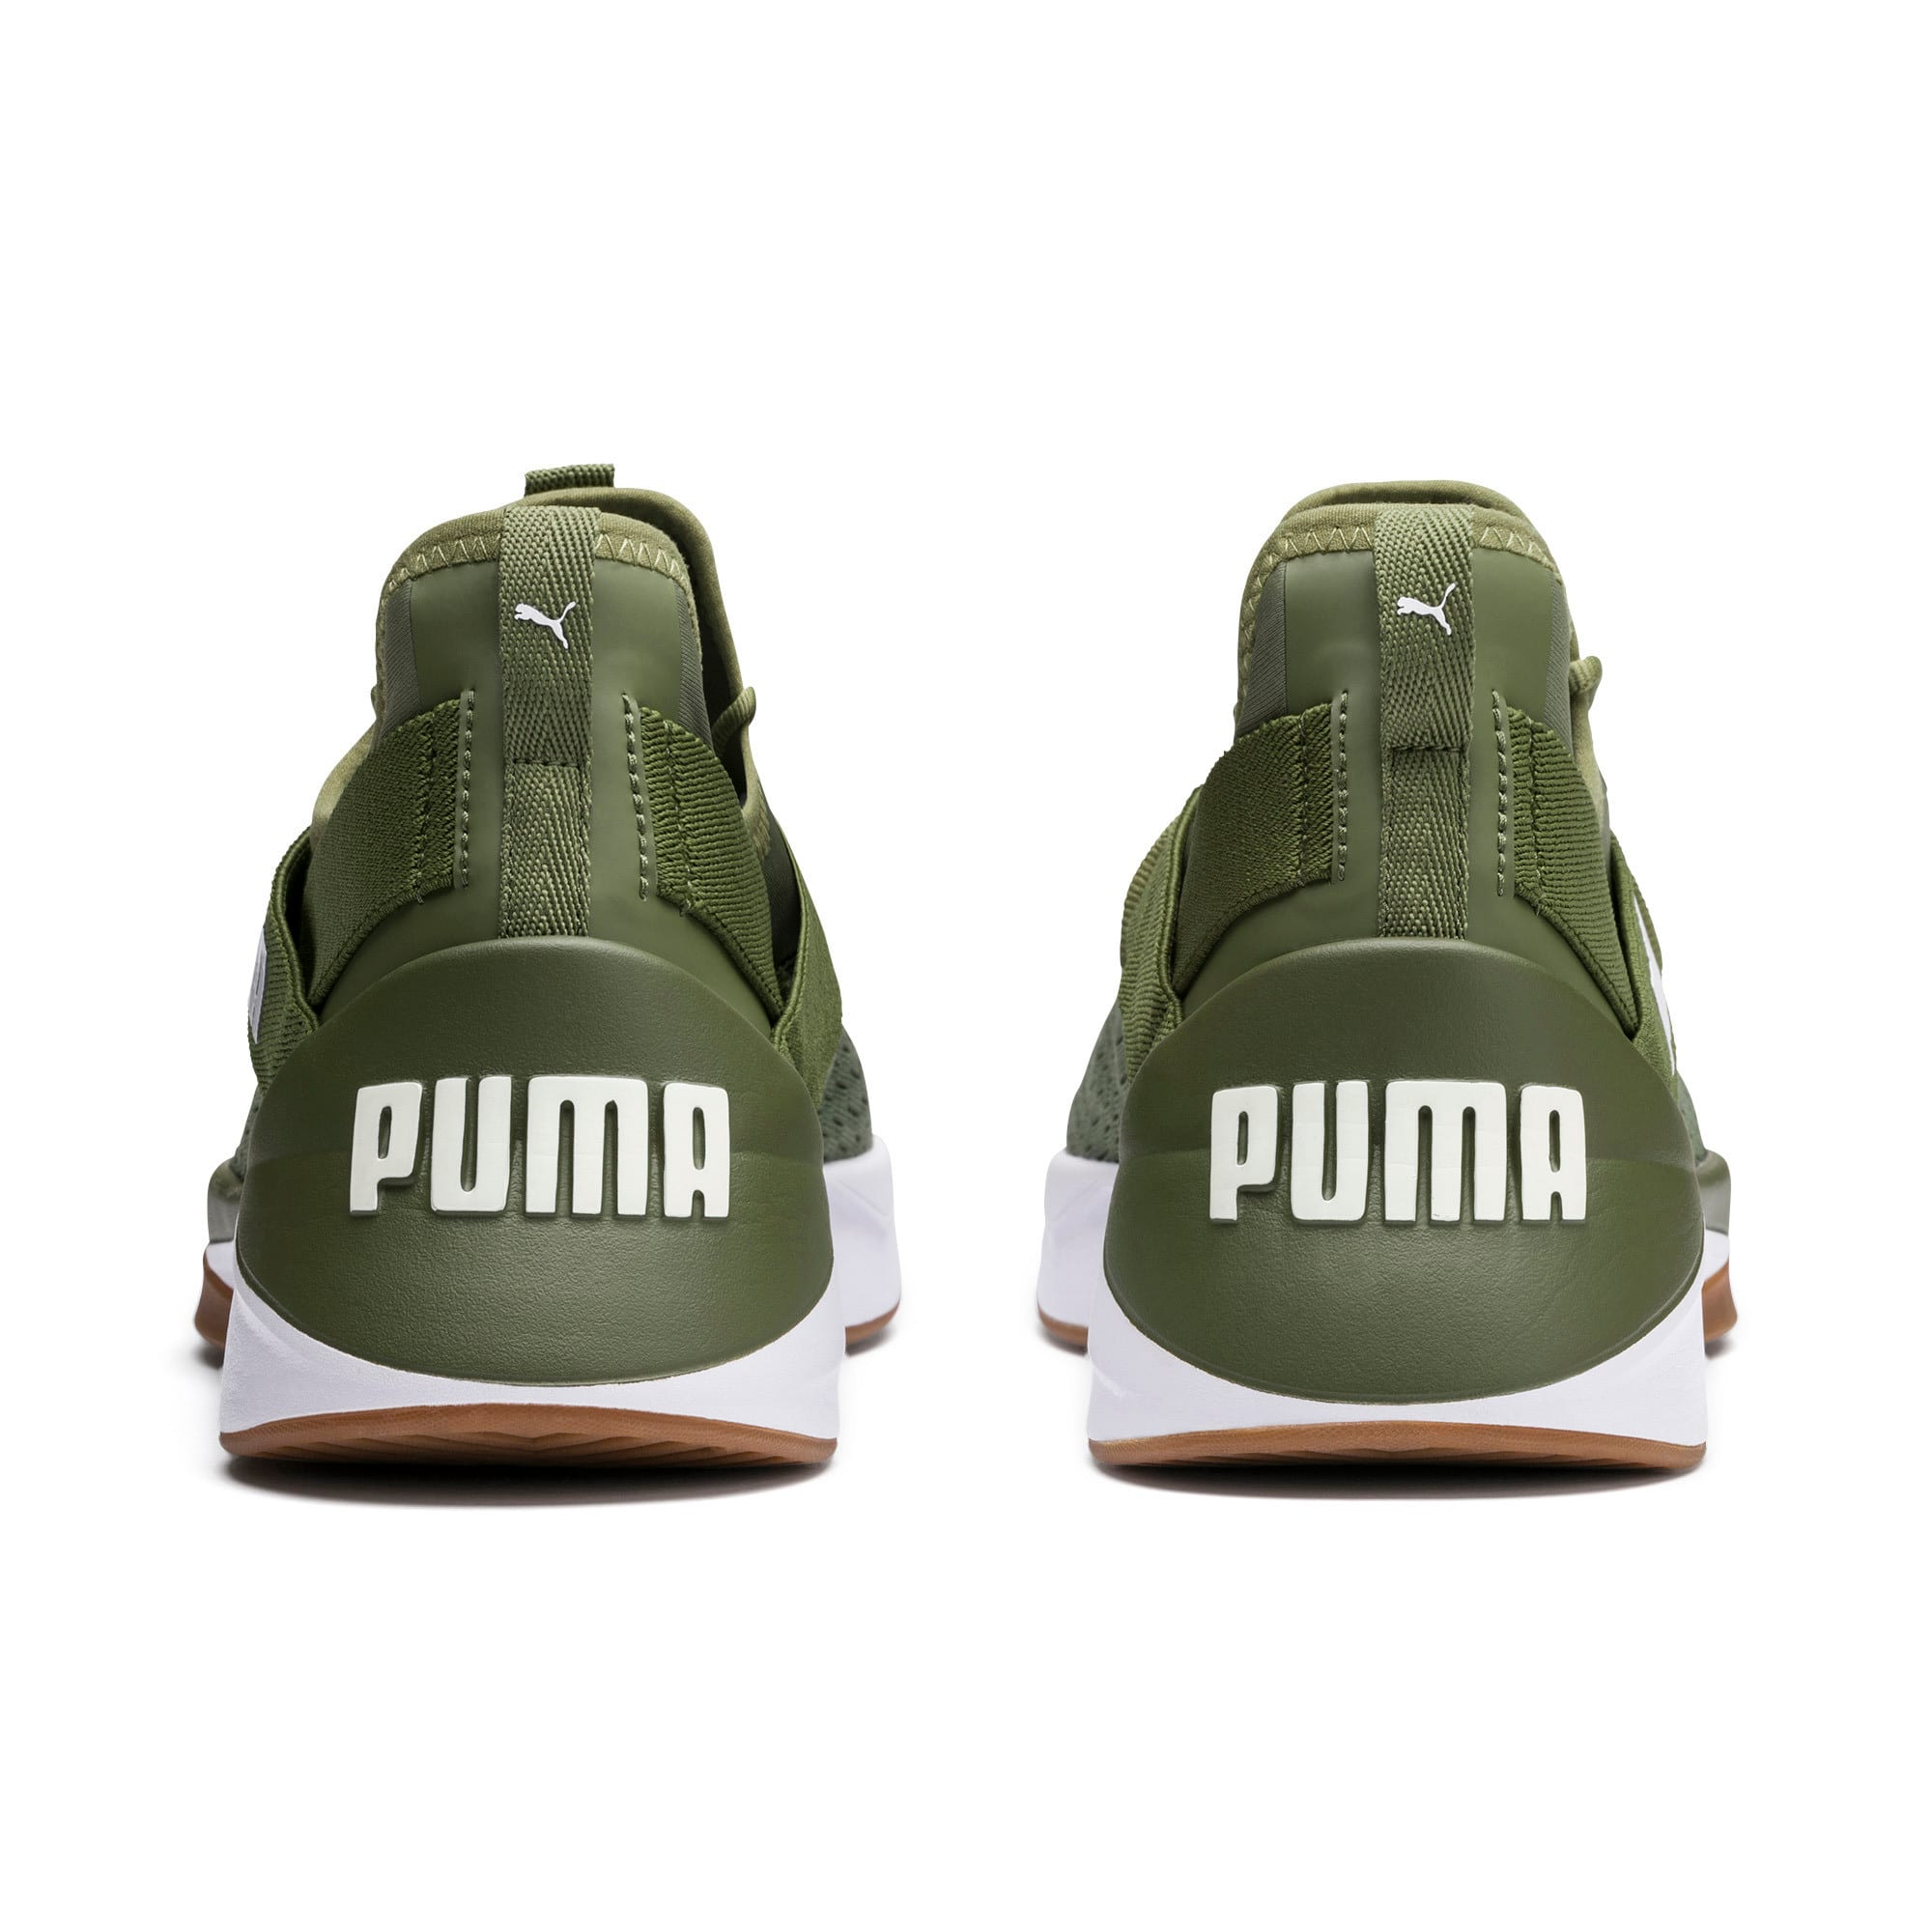 Thumbnail 3 of Jaab XT Summer Herren Sneaker, Olivine-Puma White, medium